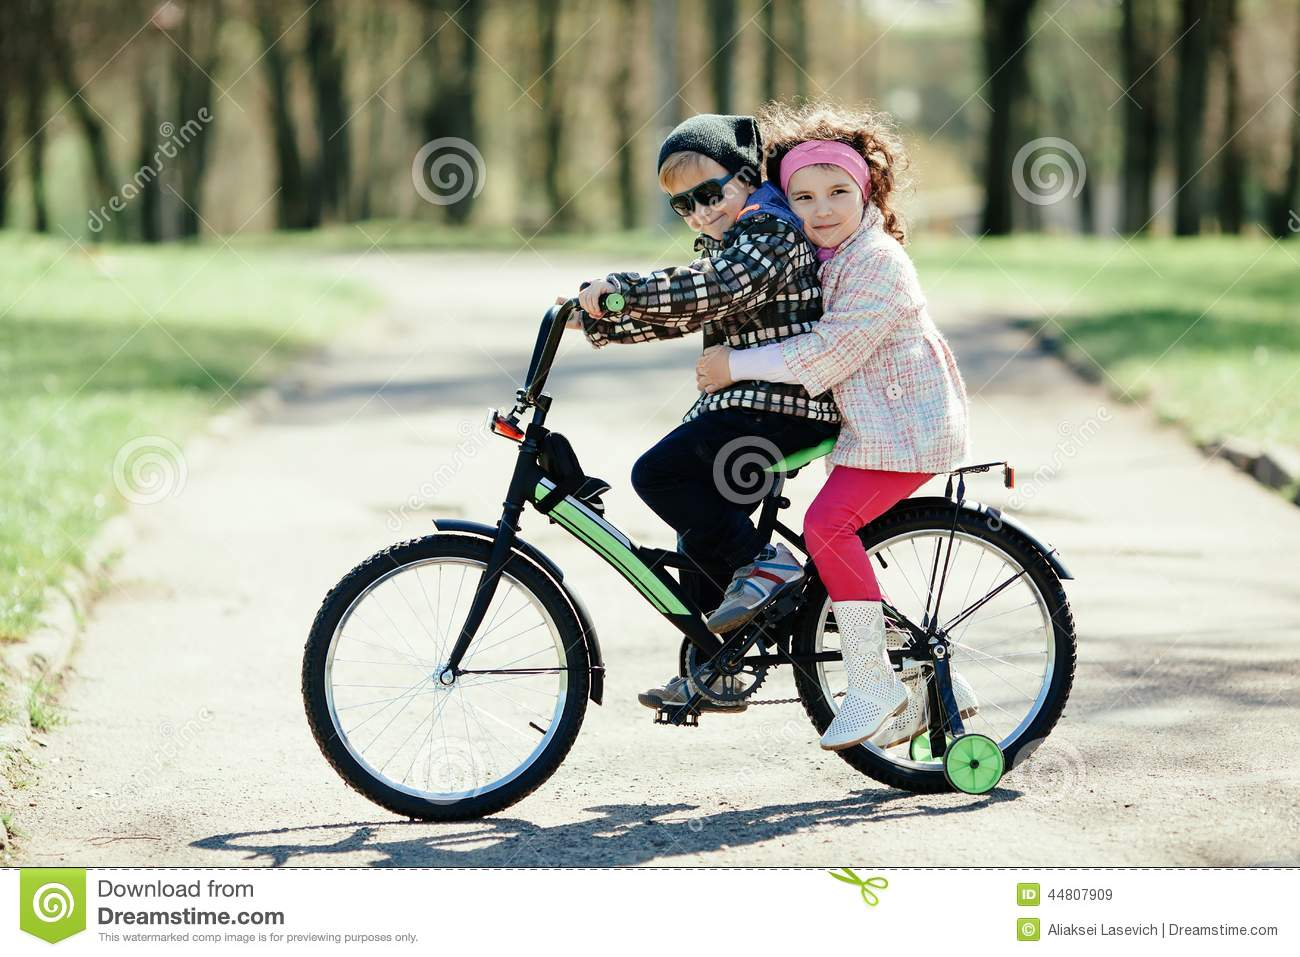 how to ride a bike wirh two people